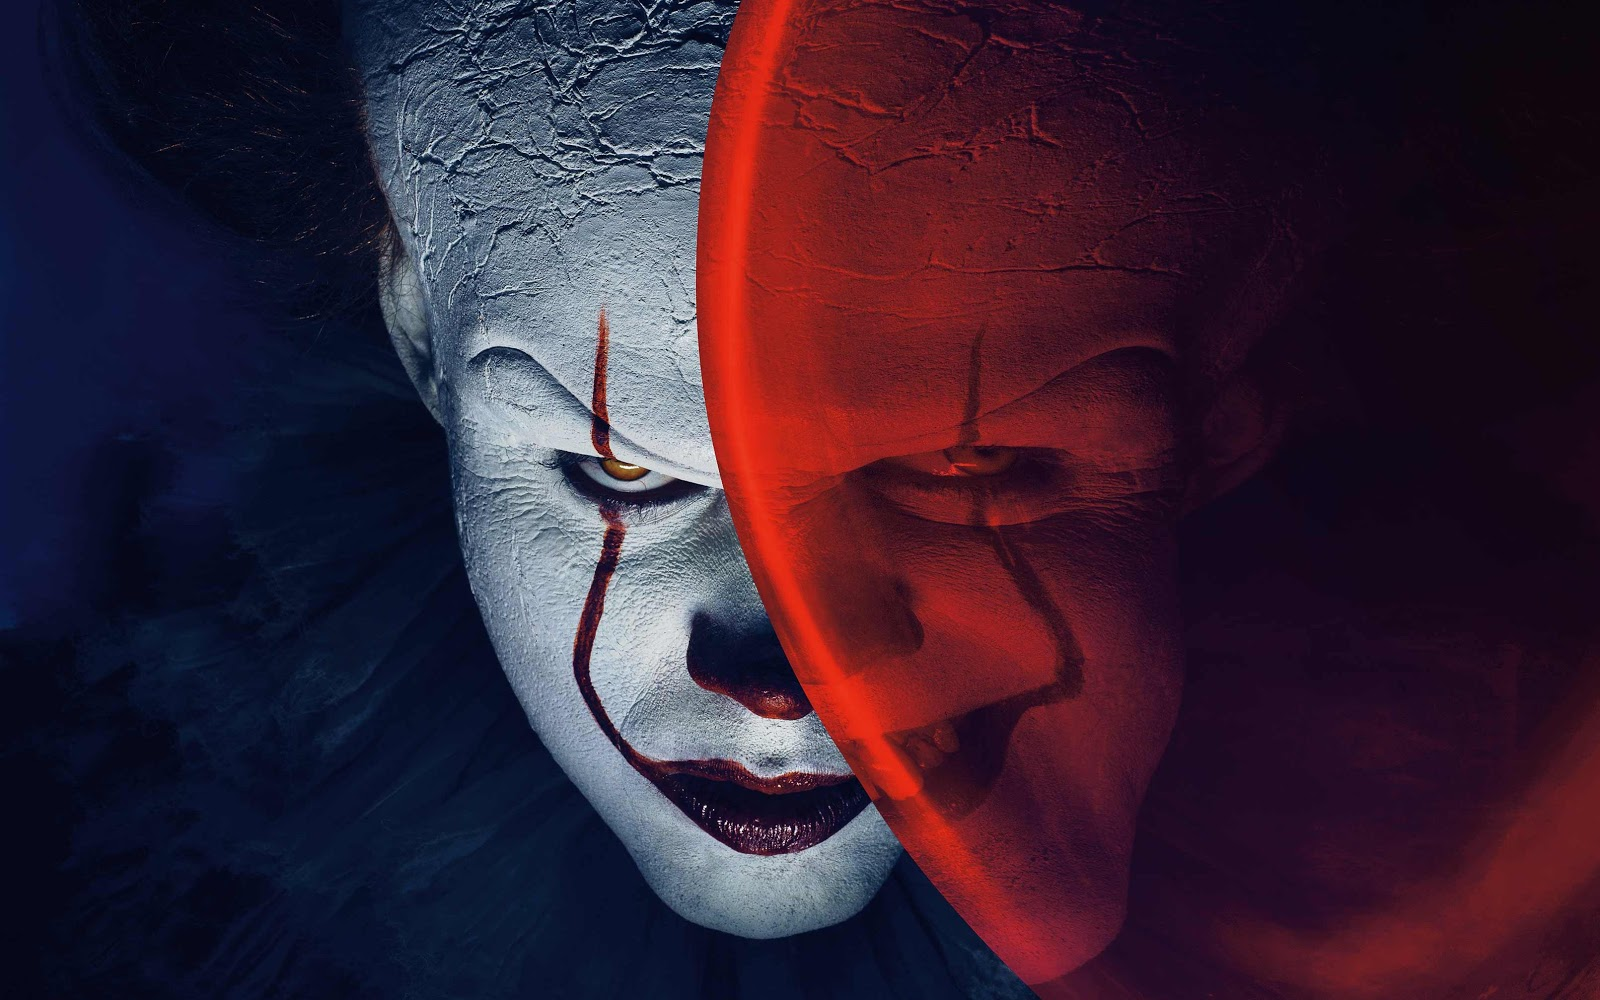 Wallpapers PC, Horror movie, IT, palloncino rosso